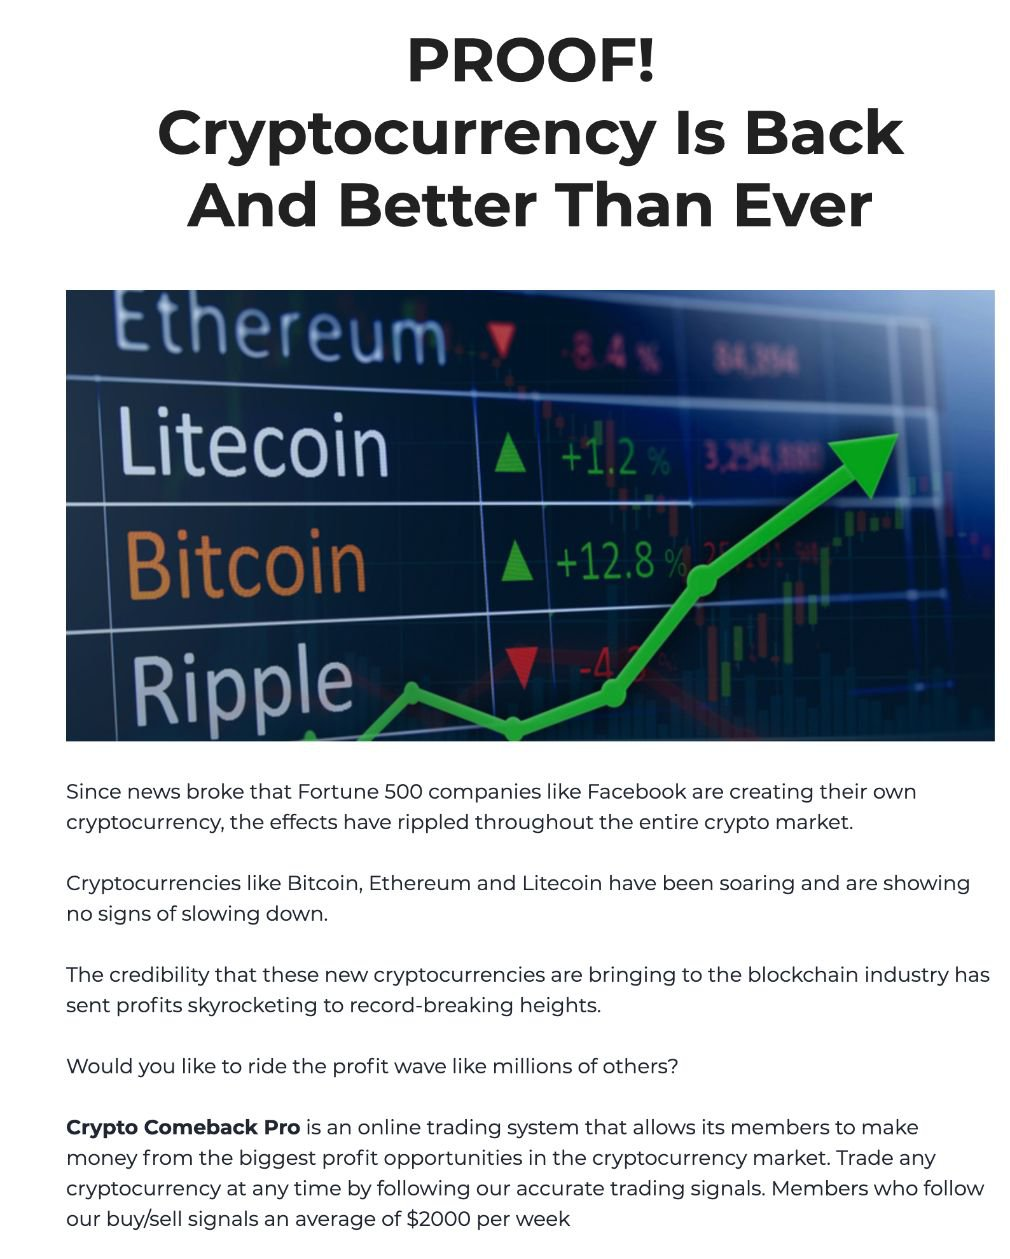 Crypto Comeback Pro Pro how it works